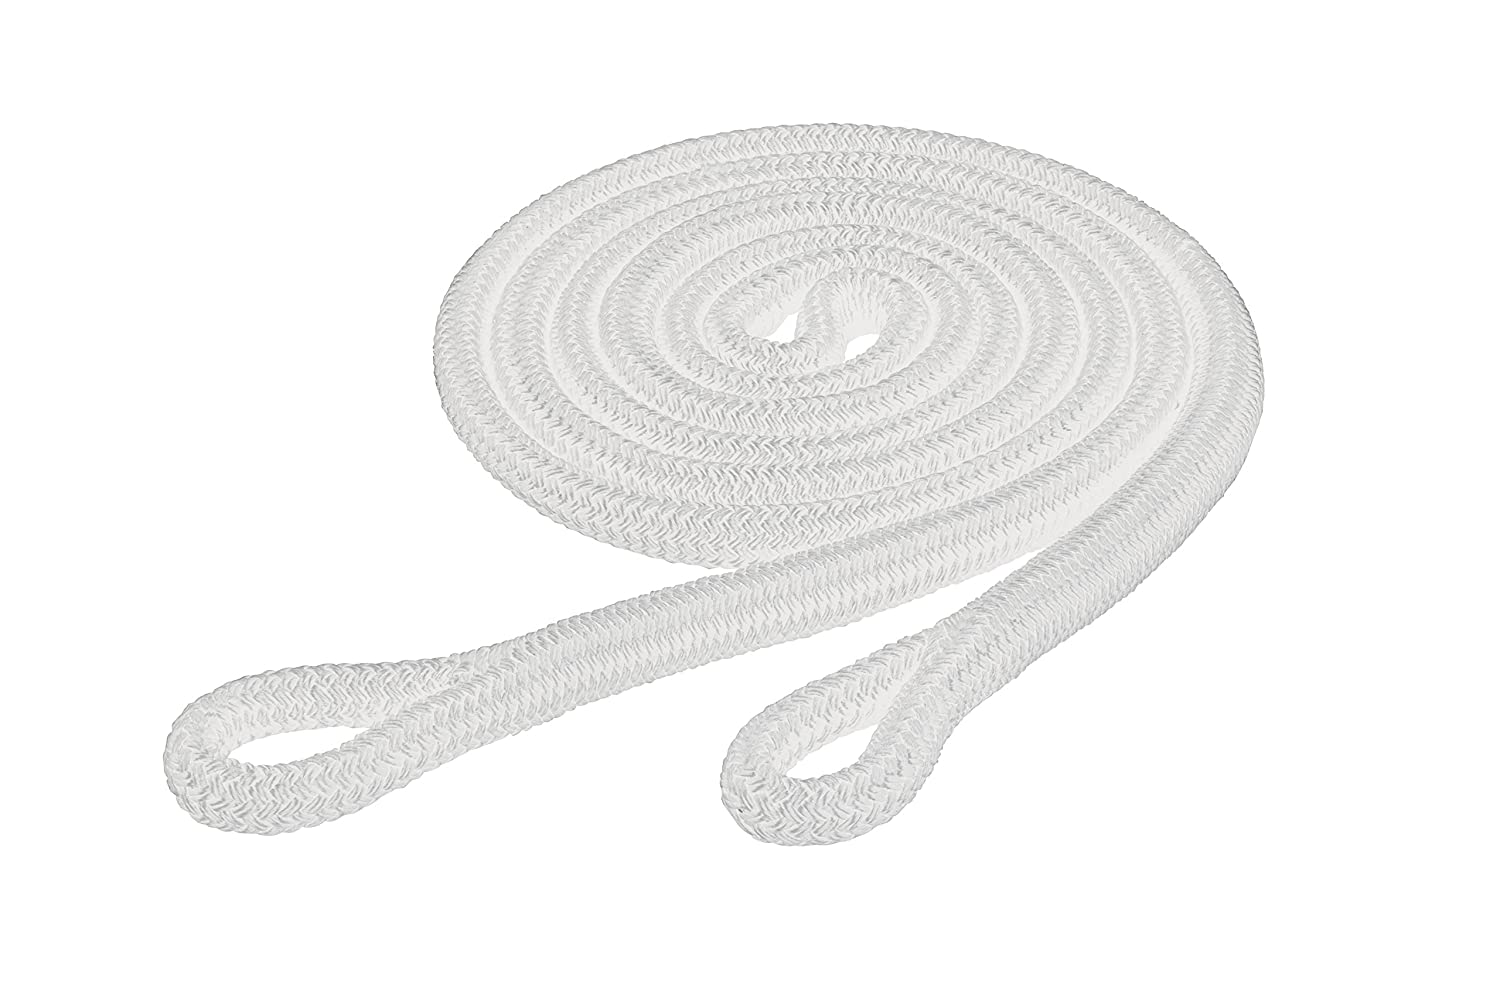 Weaver Leather Weaver Leather Ken McNabb Yacht Braid Loop Reins, White 35-4702-WH, White, 9 16  x 10'